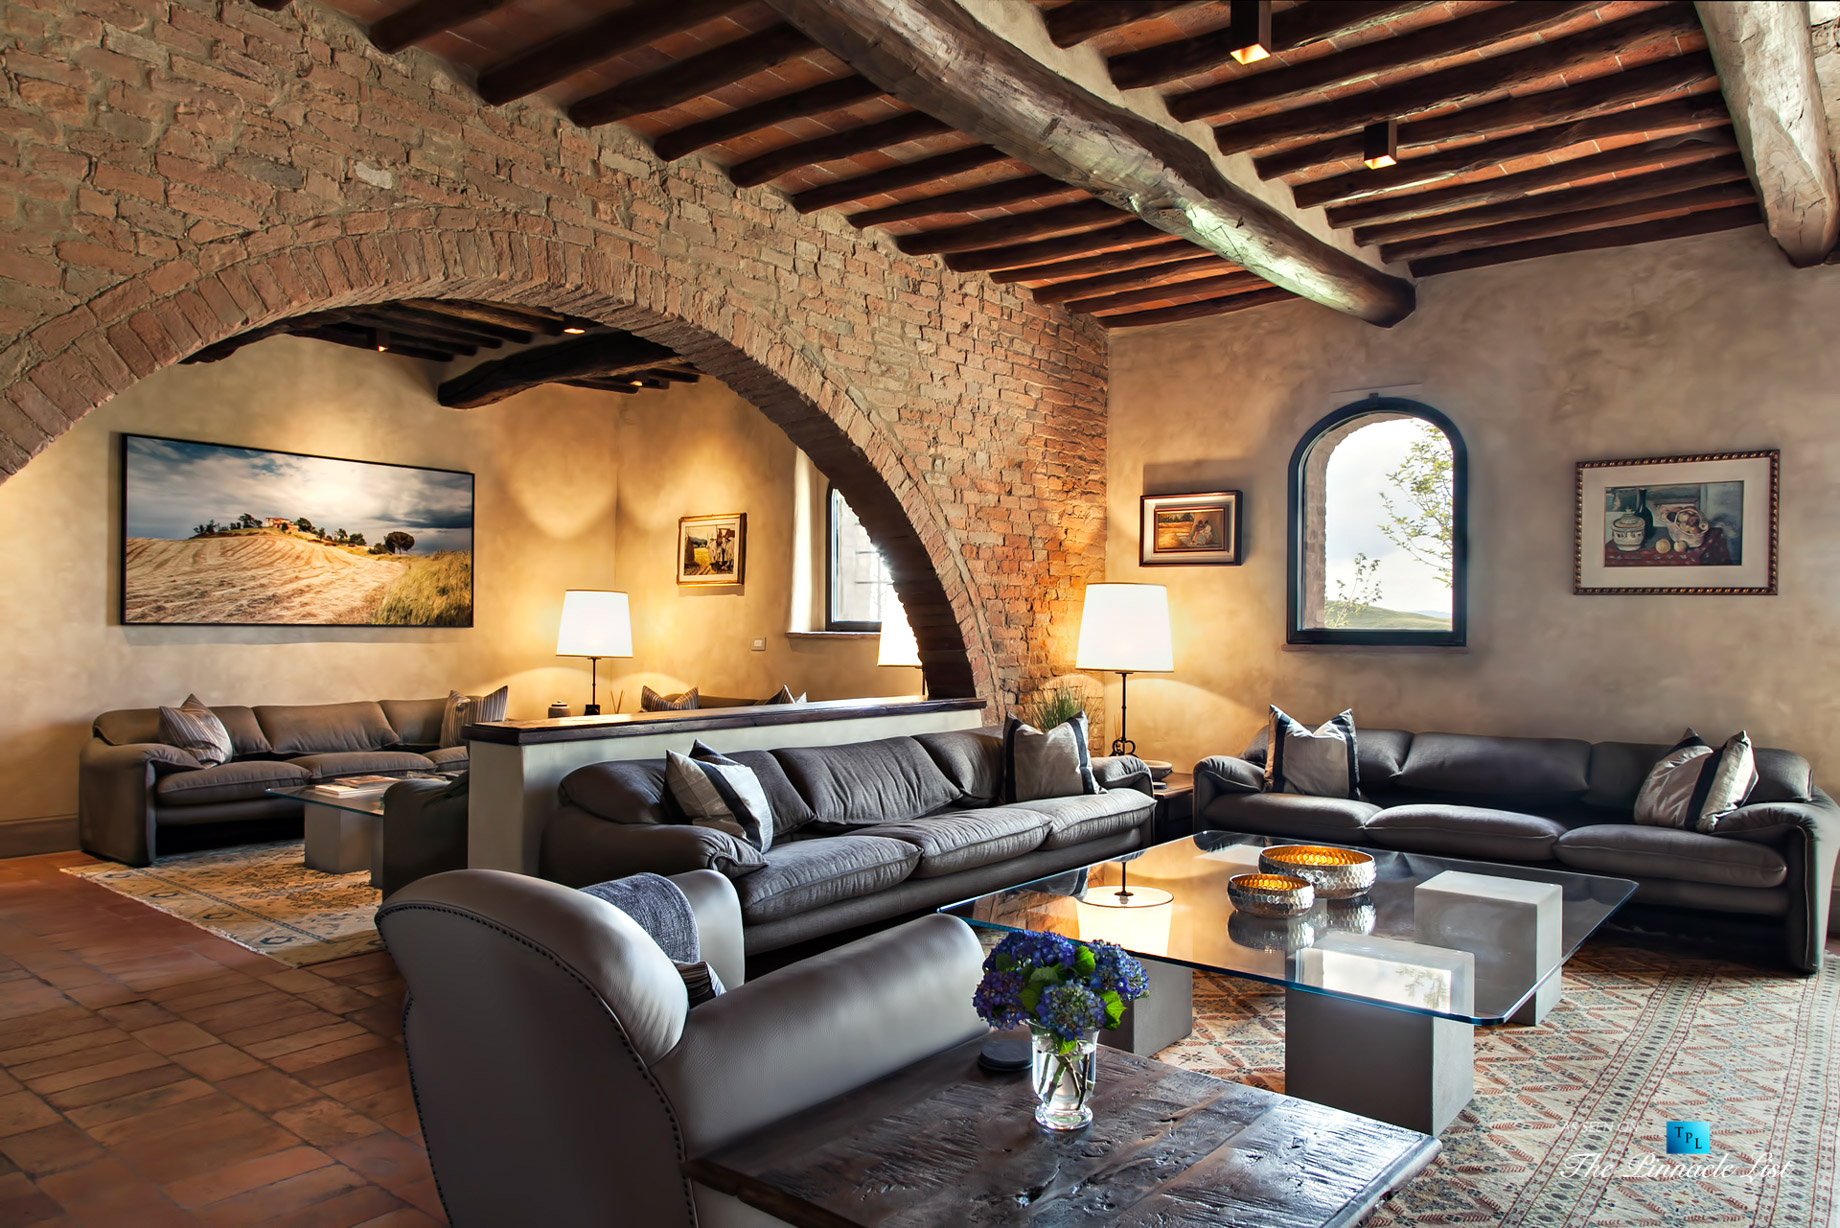 Podere Paníco Estate - Monteroni d'Arbia, Tuscany, Italy - Living Room - Luxury Real Estate - Tuscan Villa